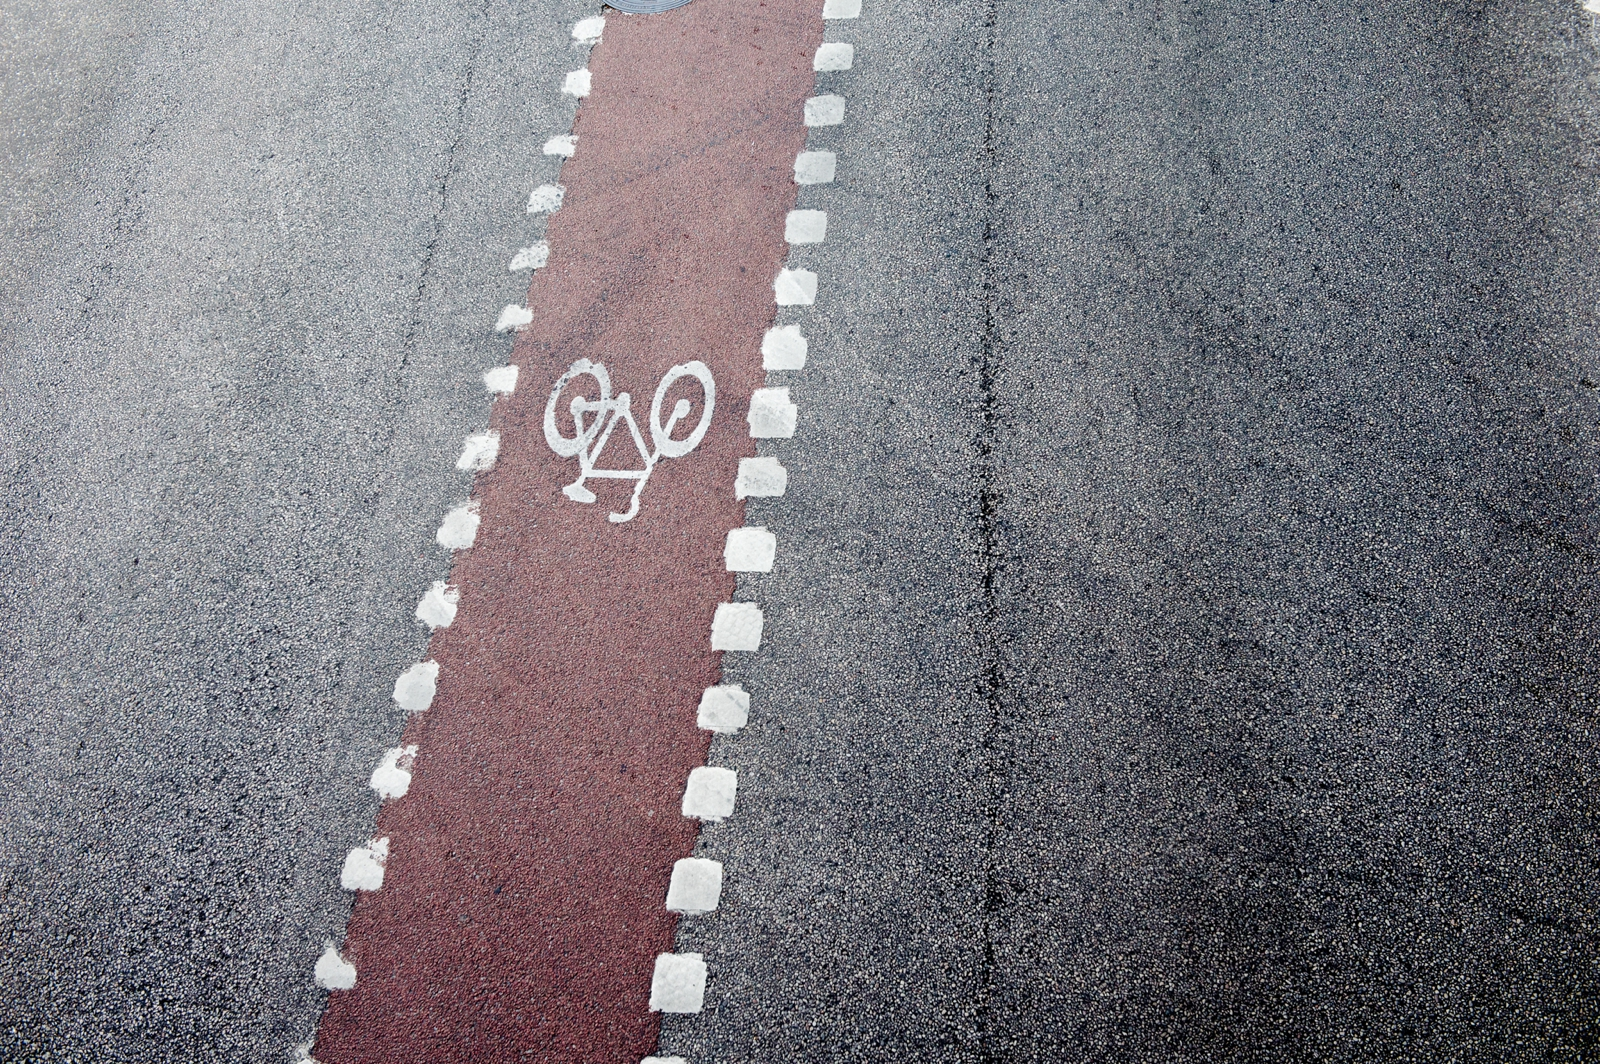 Swedish cycle lane